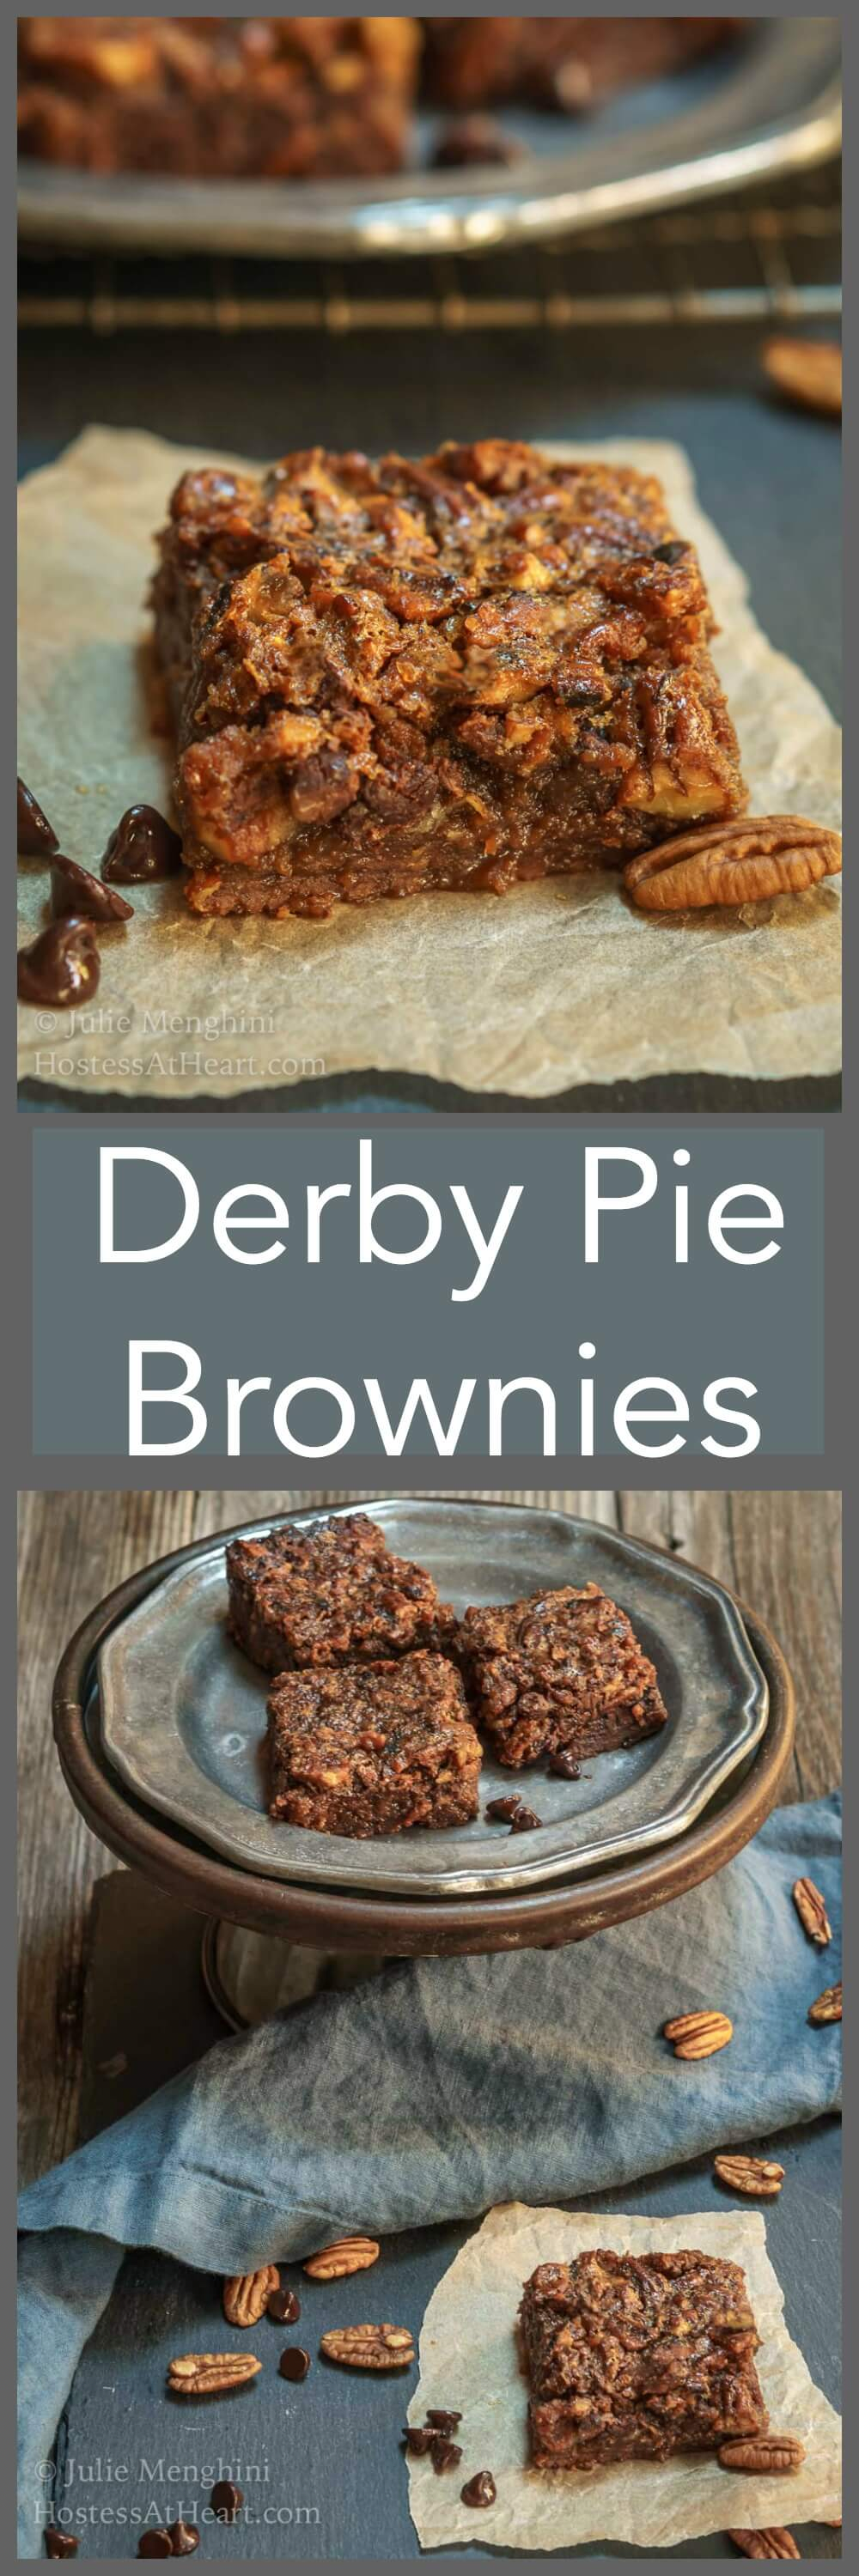 Derby Pie Brownie Bar recipe is the best combination of a dark chocolate brownie and a pecan pie. It's rich, delicious, and perfect for any occasion. HostessAtHeart.com